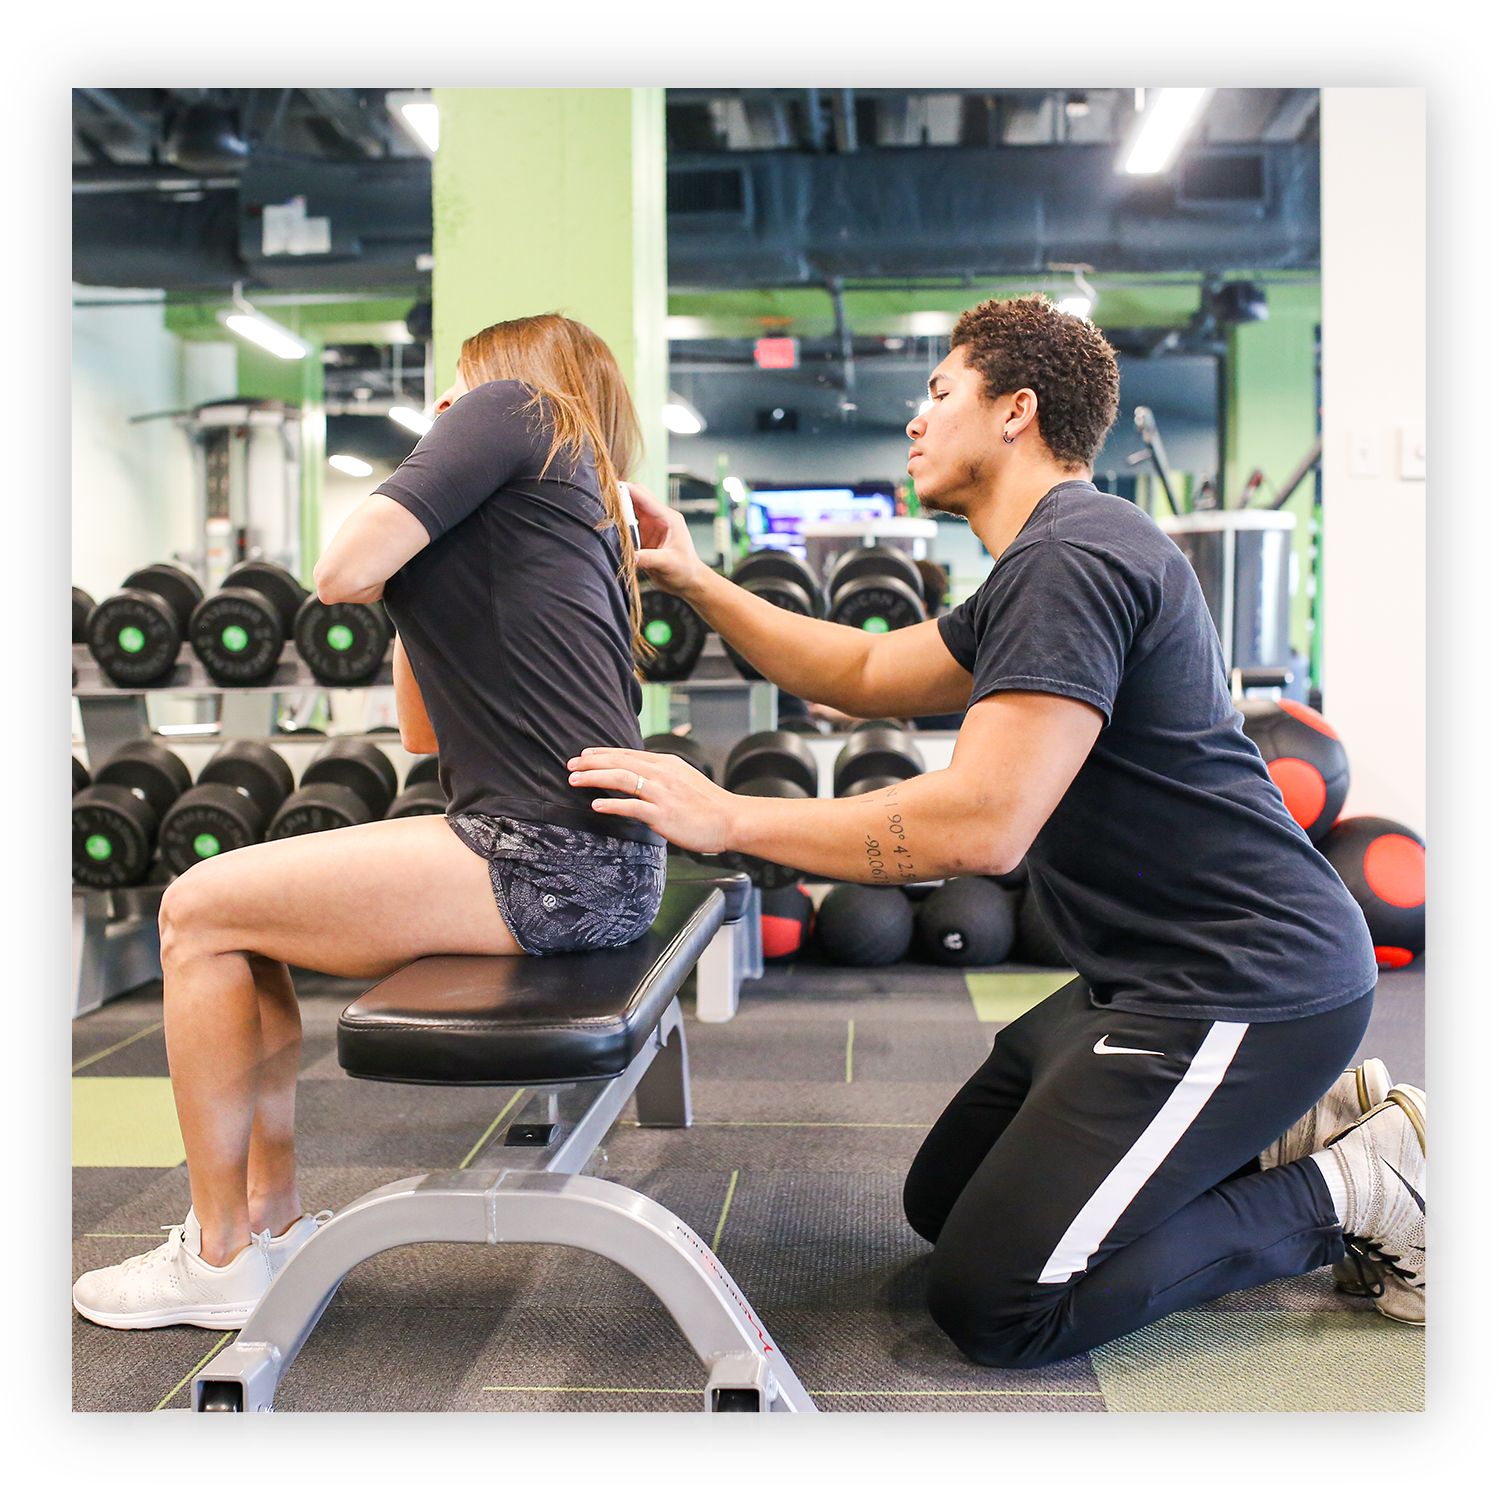 Fill Idle Hours - Typical personal training and wellness staff experience idle time—mid-day appointments are difficult to fill. Facilities that service external accounts can provide additional revenue for the facility as well as their staff during regular business hours.